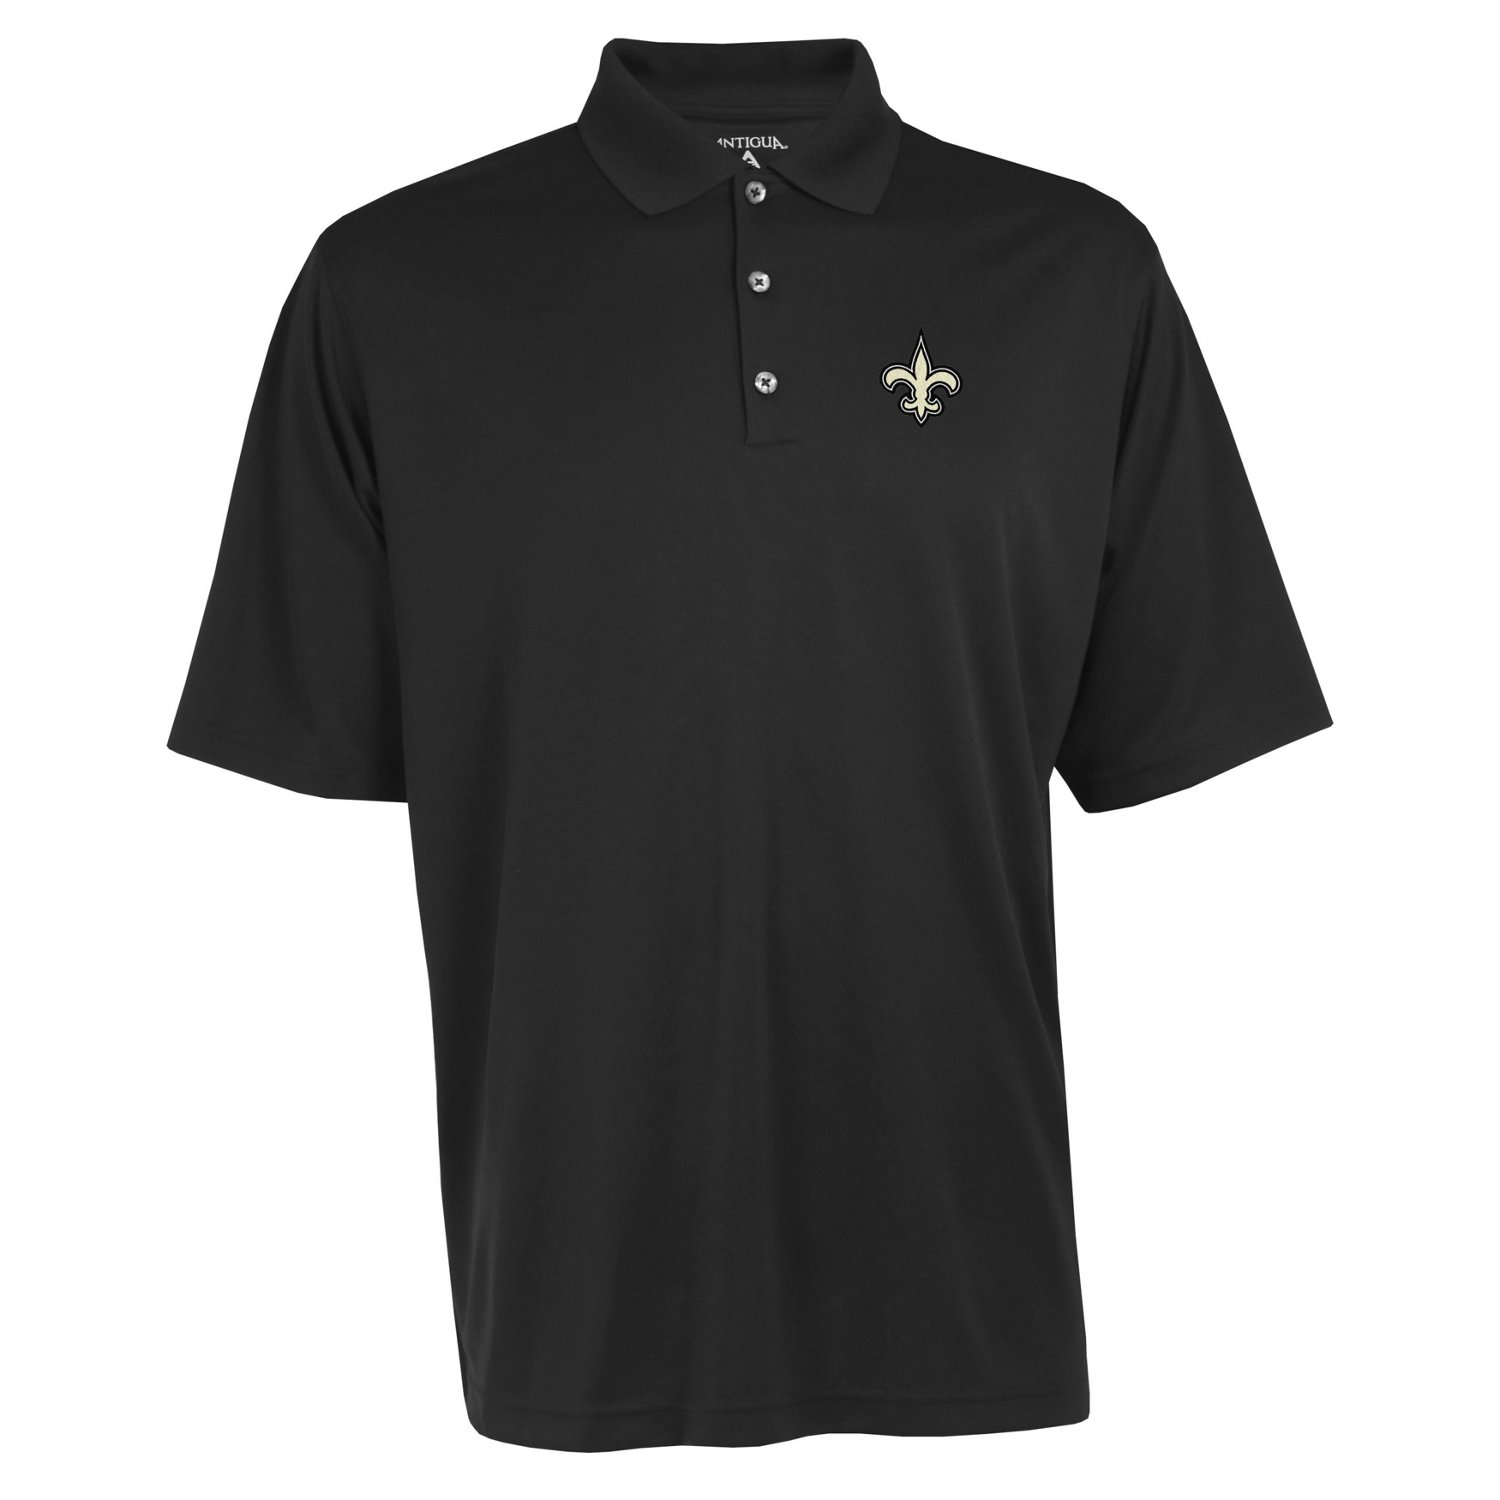 dedb7d886 Display product reviews for Antigua Men s New Orleans Saints Exceed Polo  Shirt